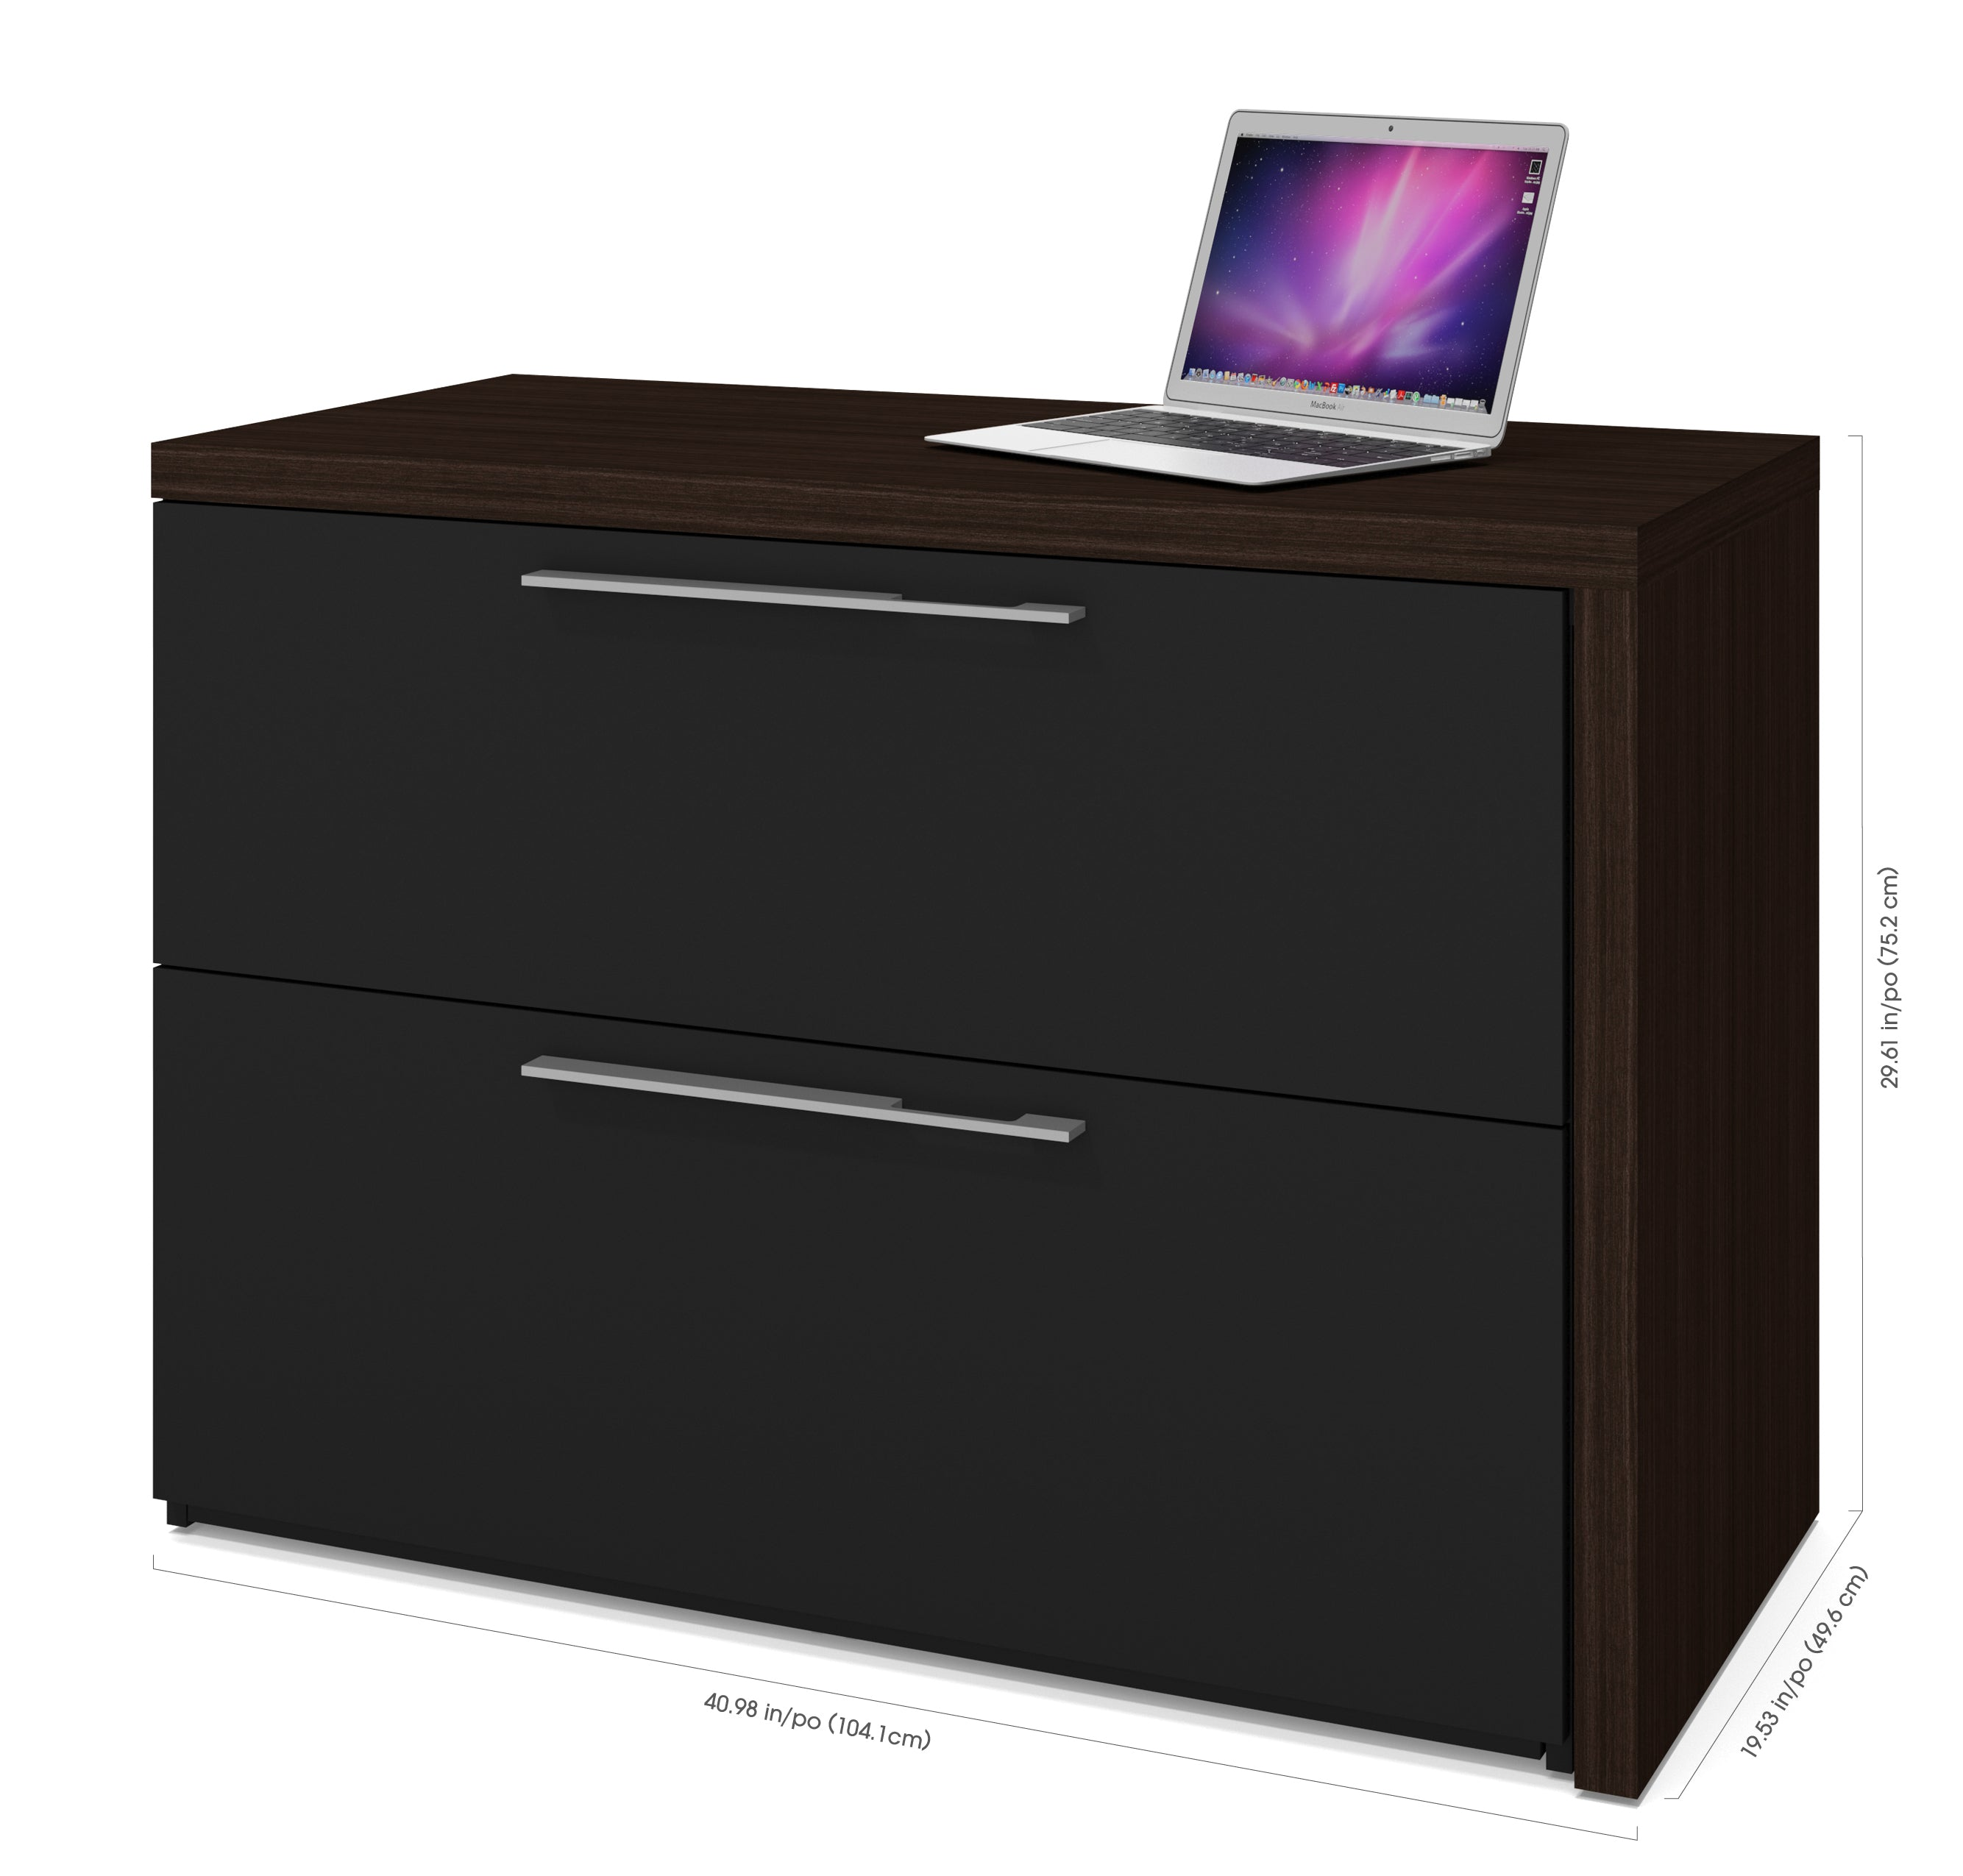 dressers wht lacquer abrazo white nightstands dresser colombo contemporary modern black